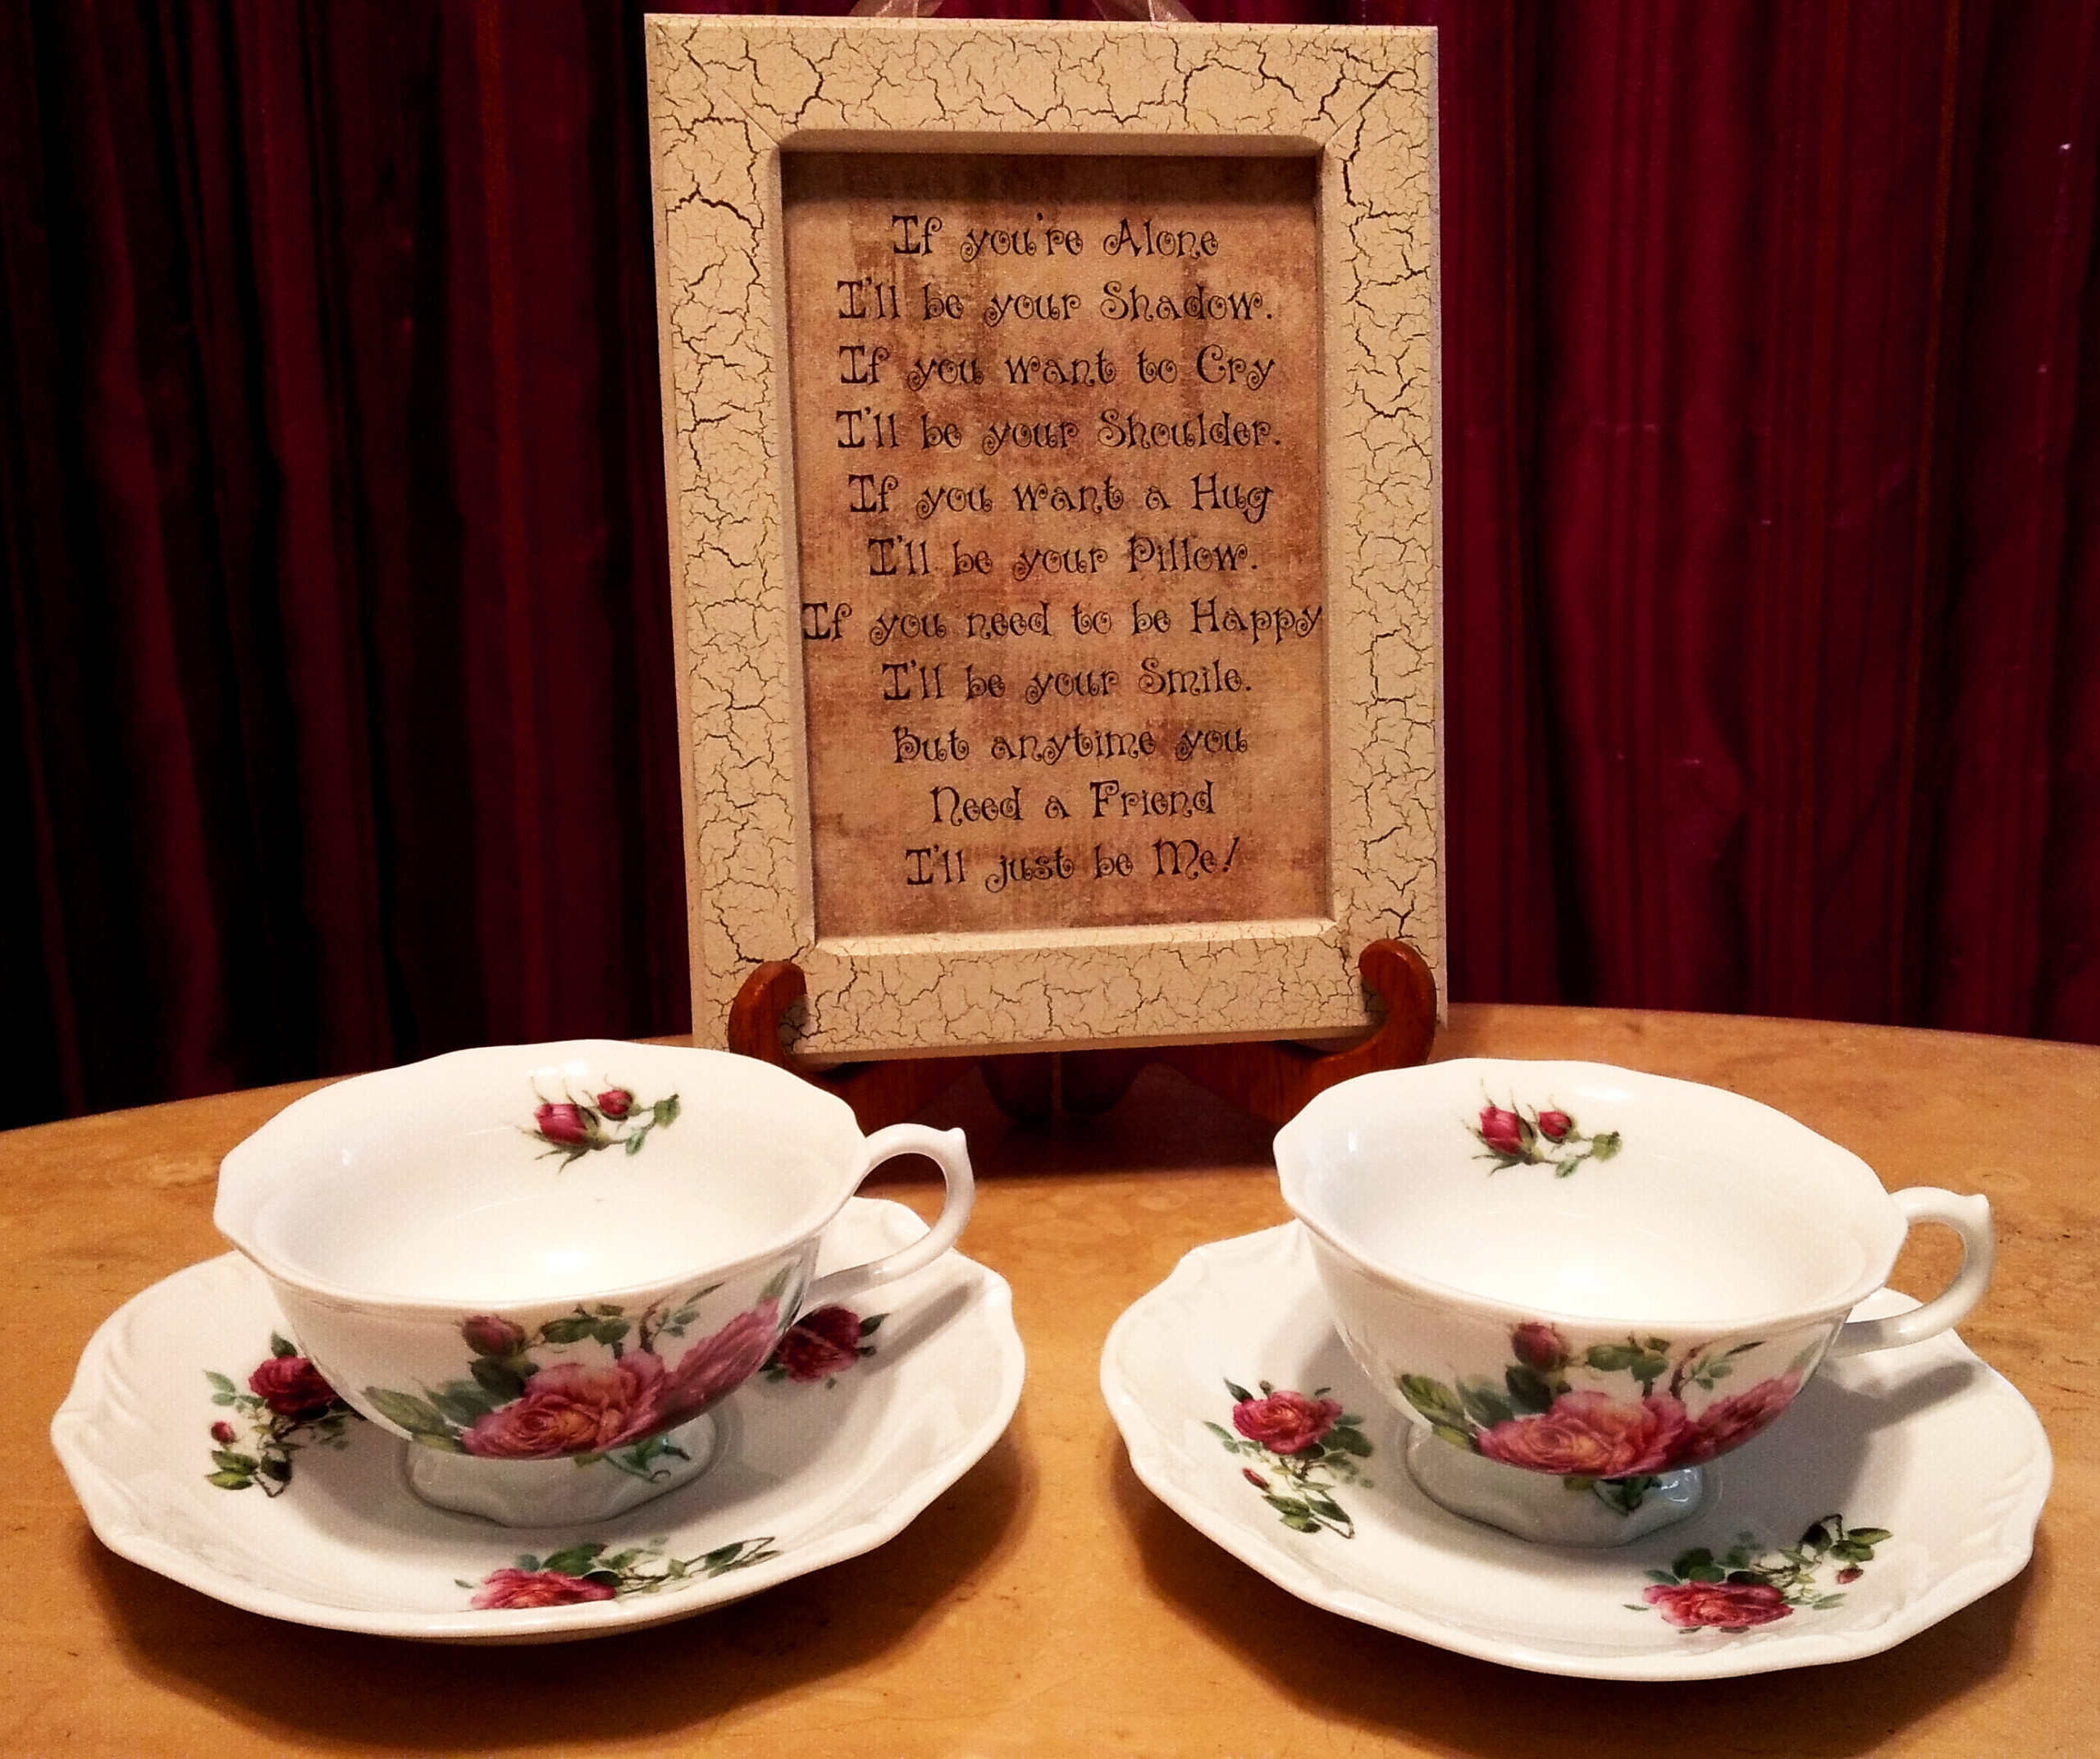 Two teacups on saucers in front of placard with dark background